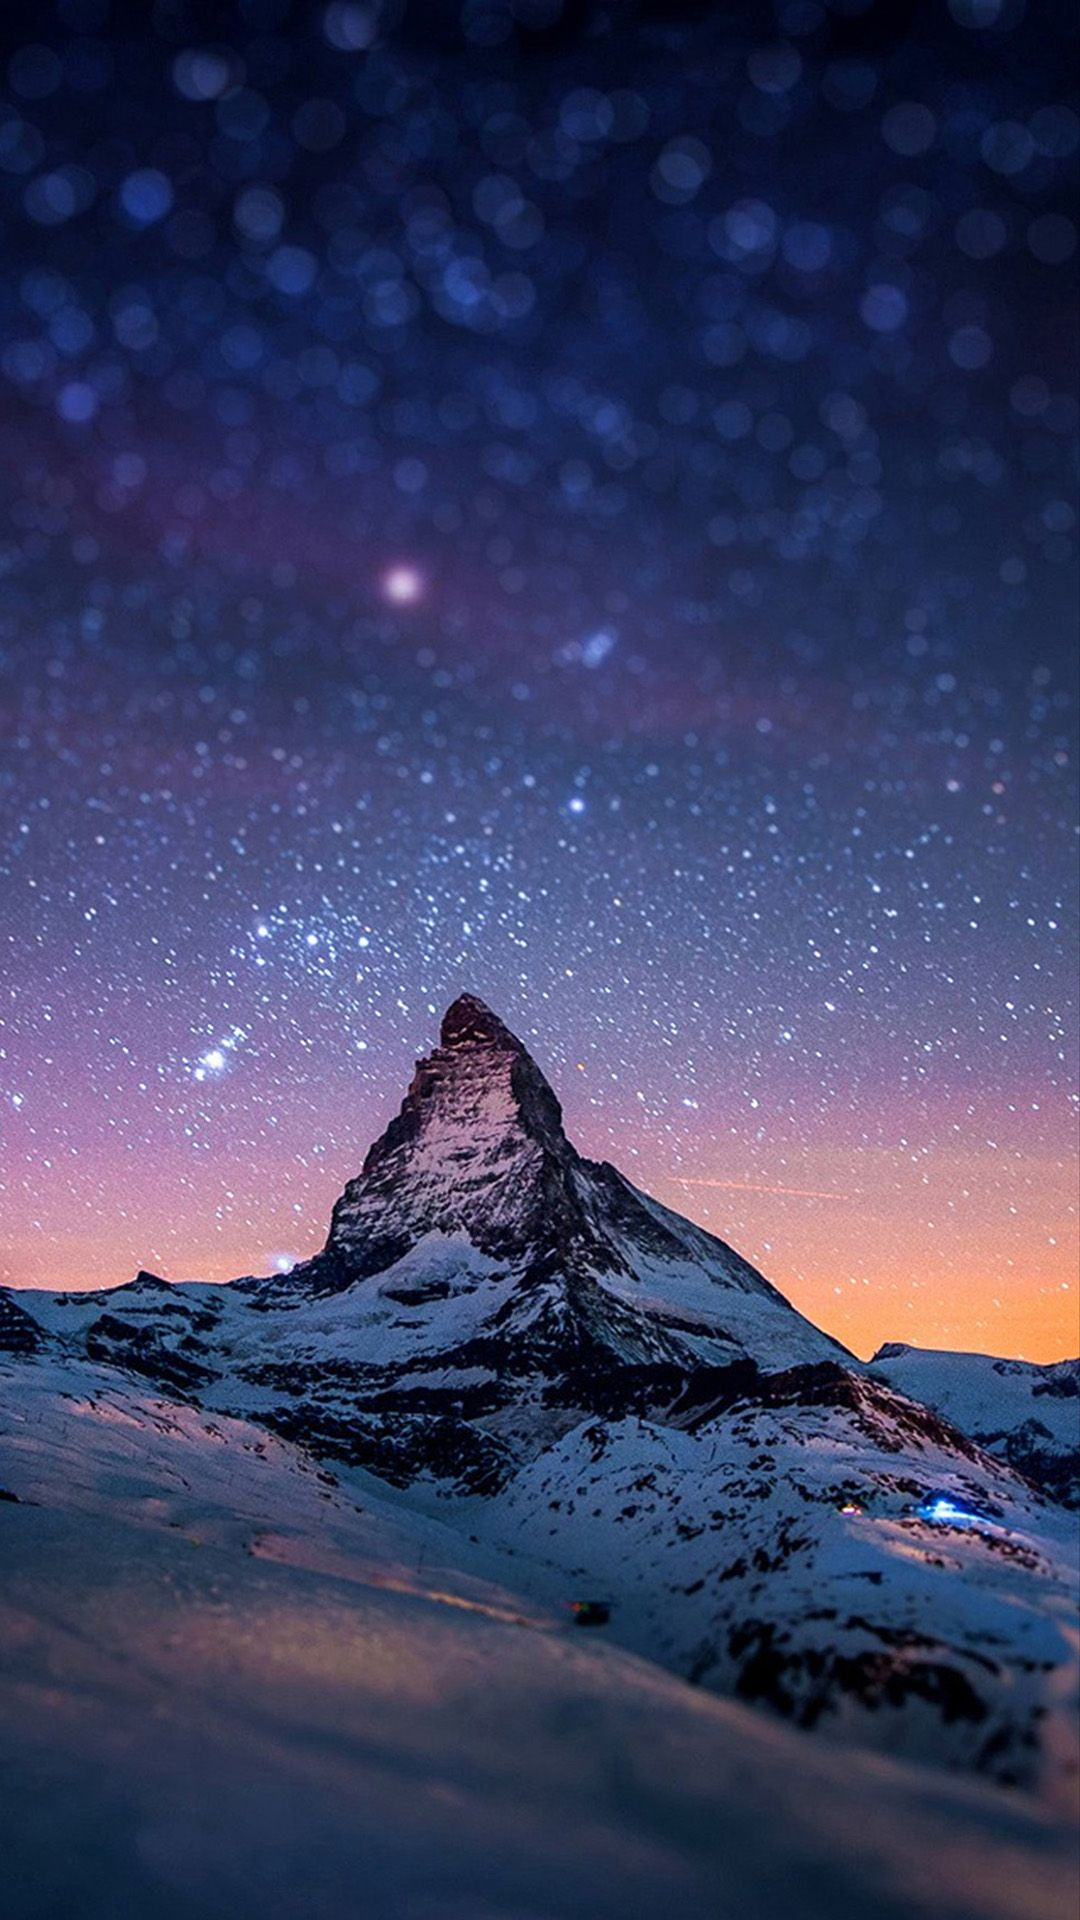 Space Wallpapers for iPhone 6 Plus 58, iPhone 6 Plus